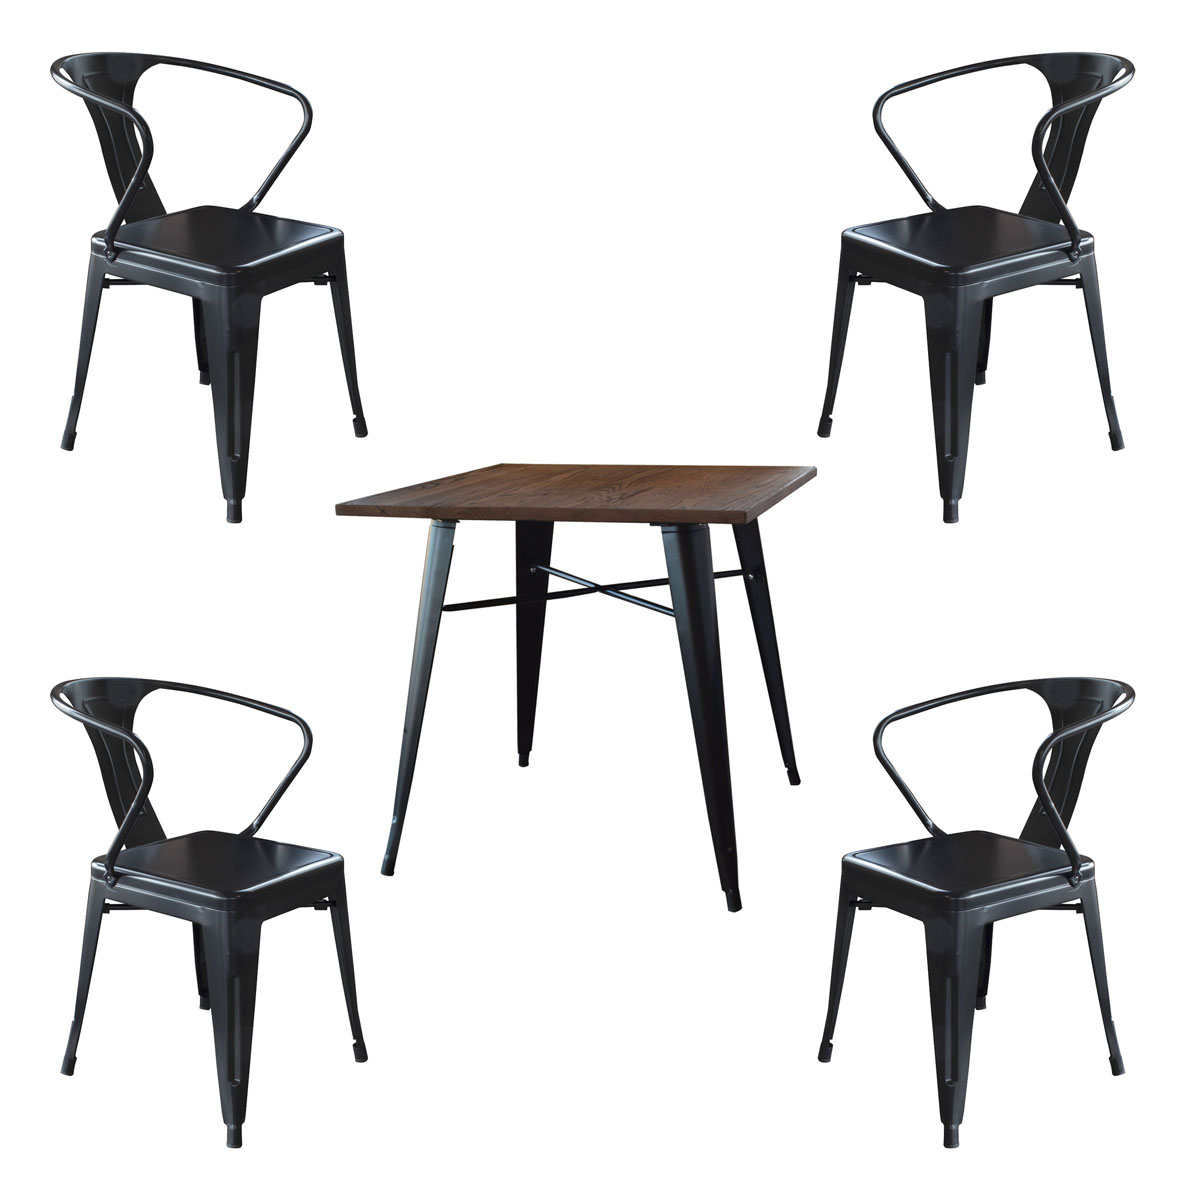 AmeriHome Loft Glossy Black Metal Dining Set - 5 Piece